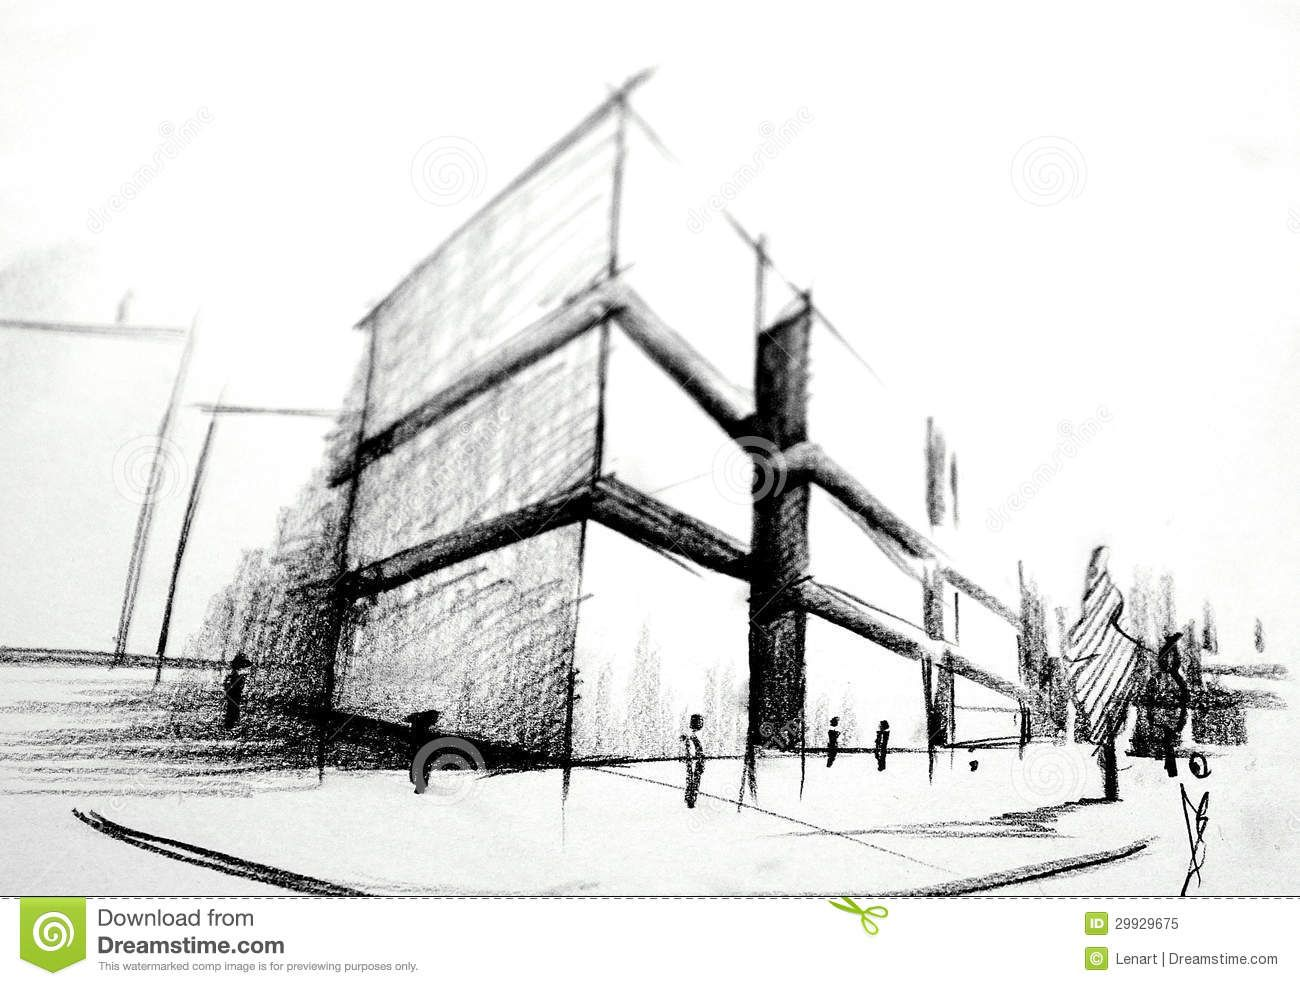 Architecture Buildings Sketch architecture sketch - buscar con google | architecture sketch